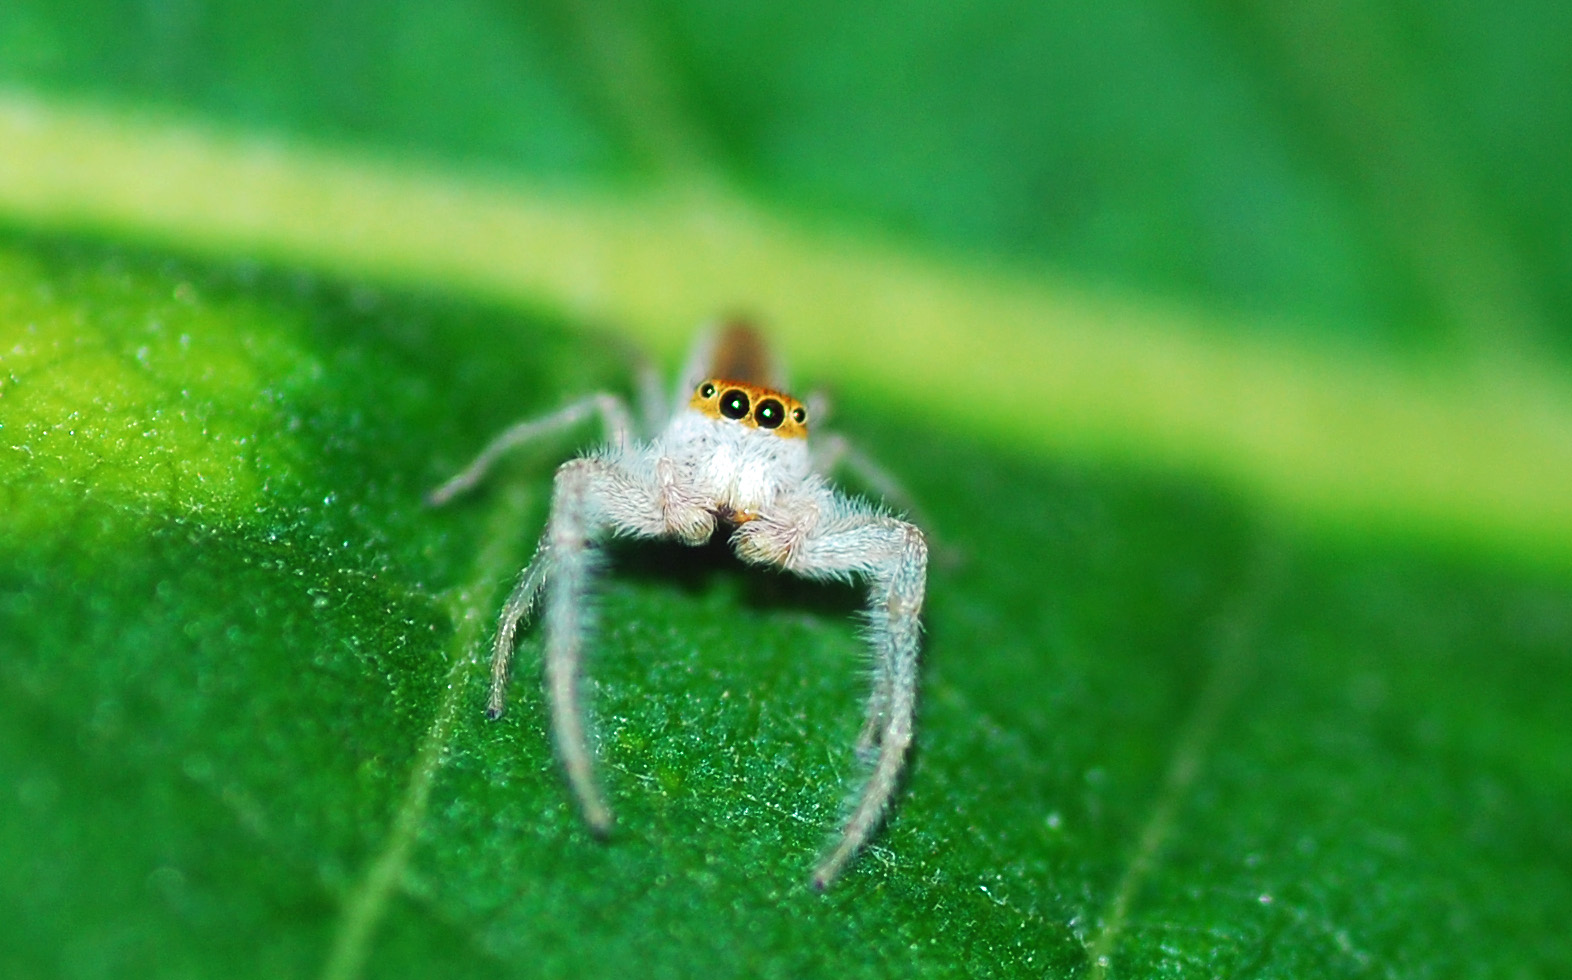 Spiders Of The Amazon Rainforest Cruises